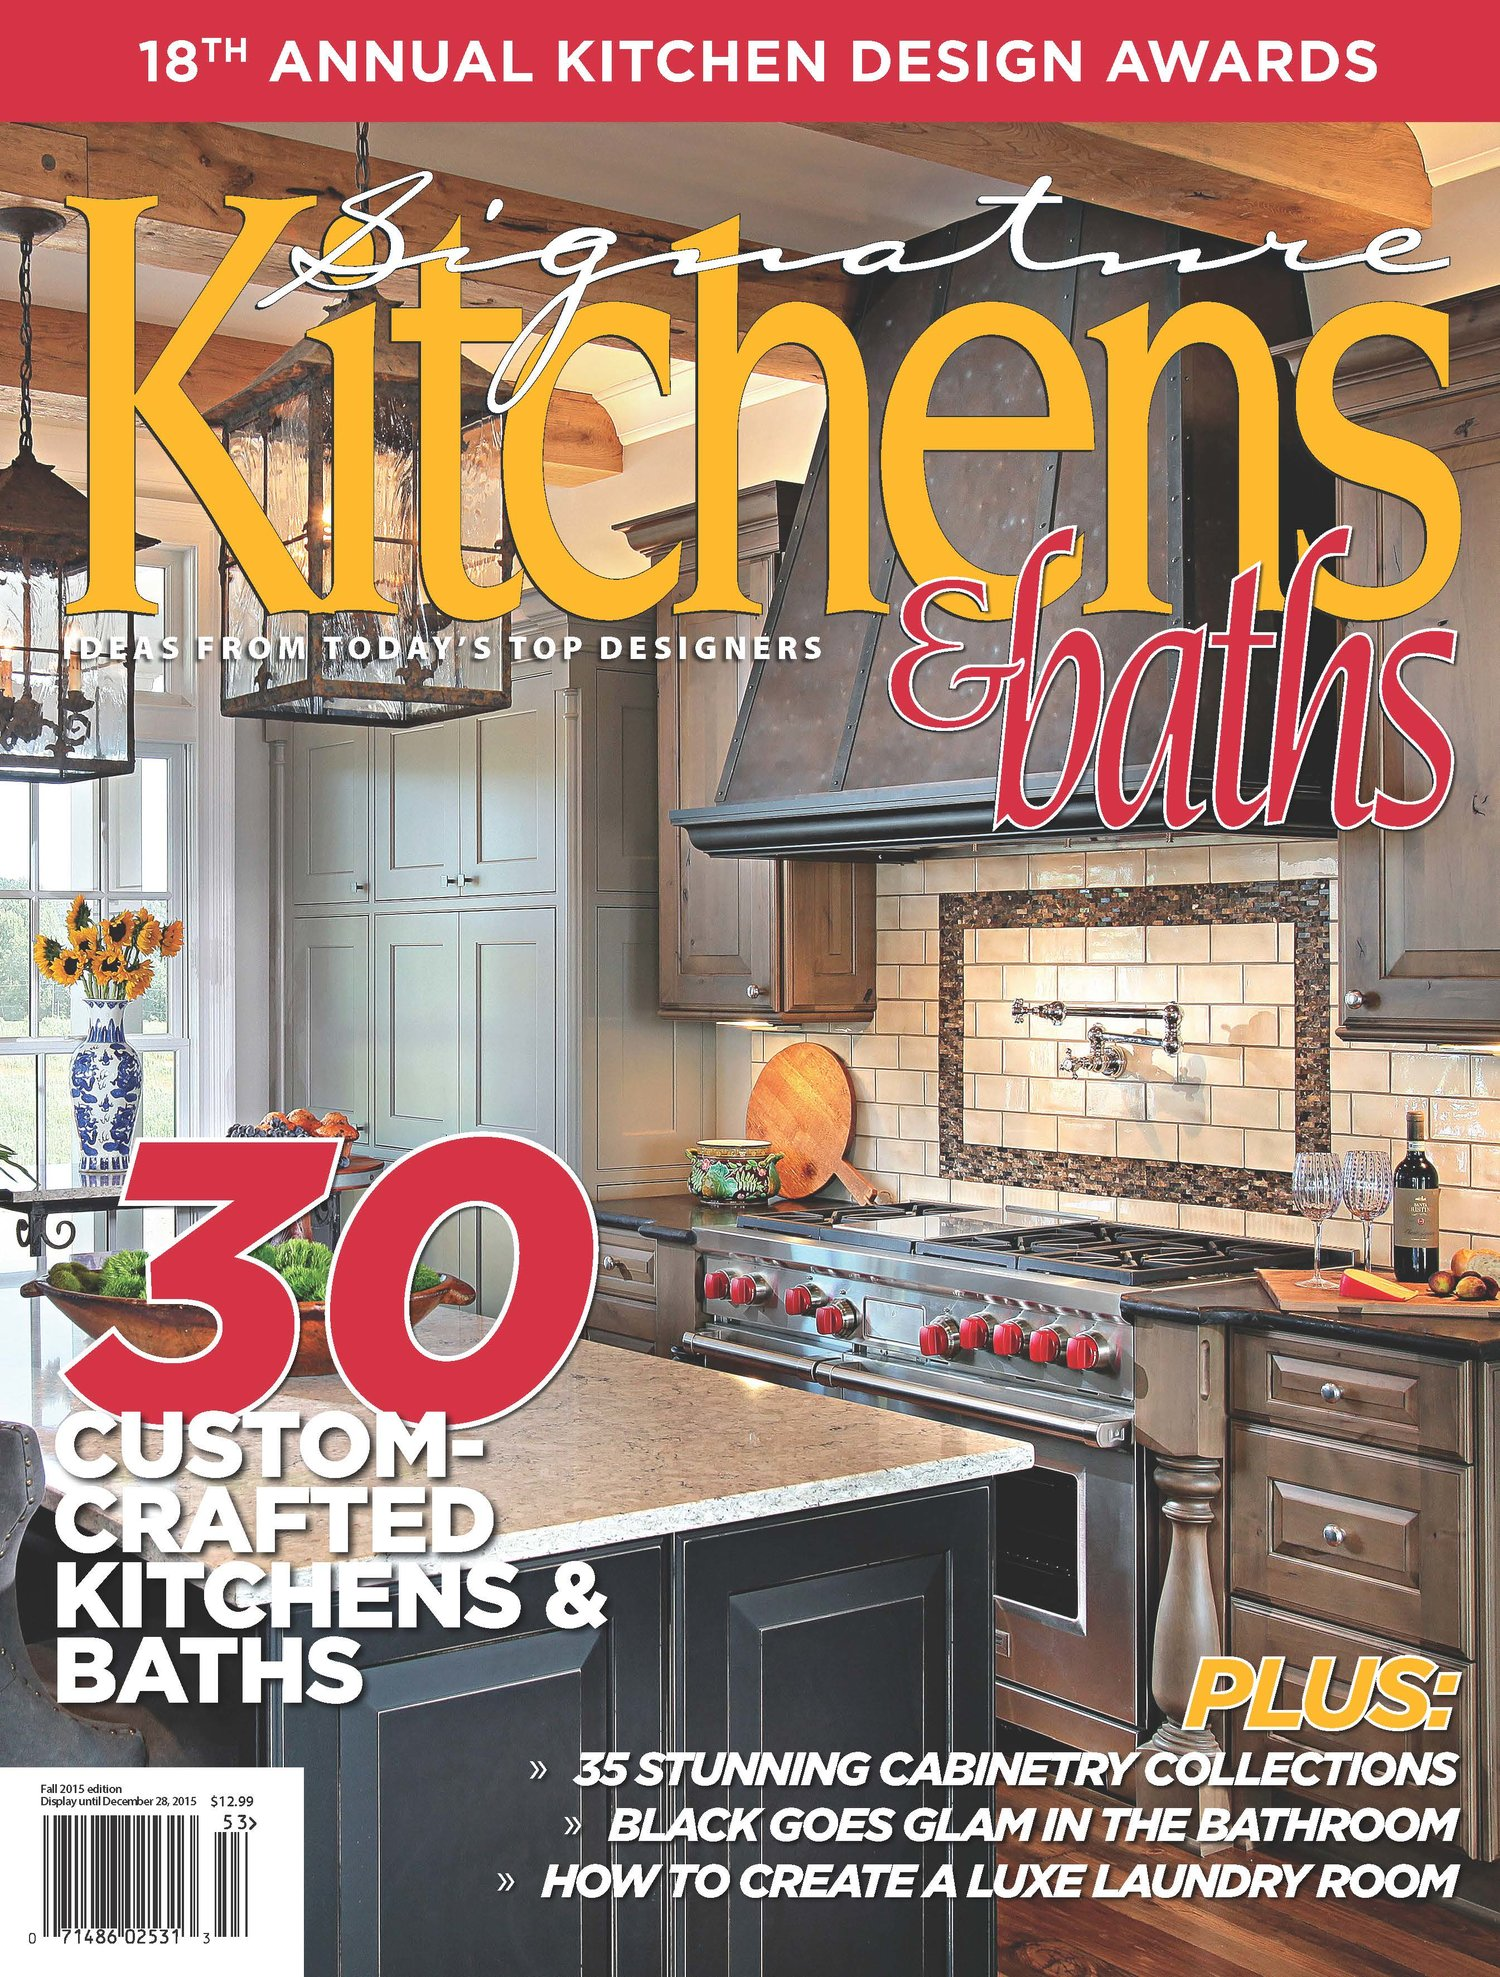 Splash Kitchens and Baths Awarded First Place in Traditional ...